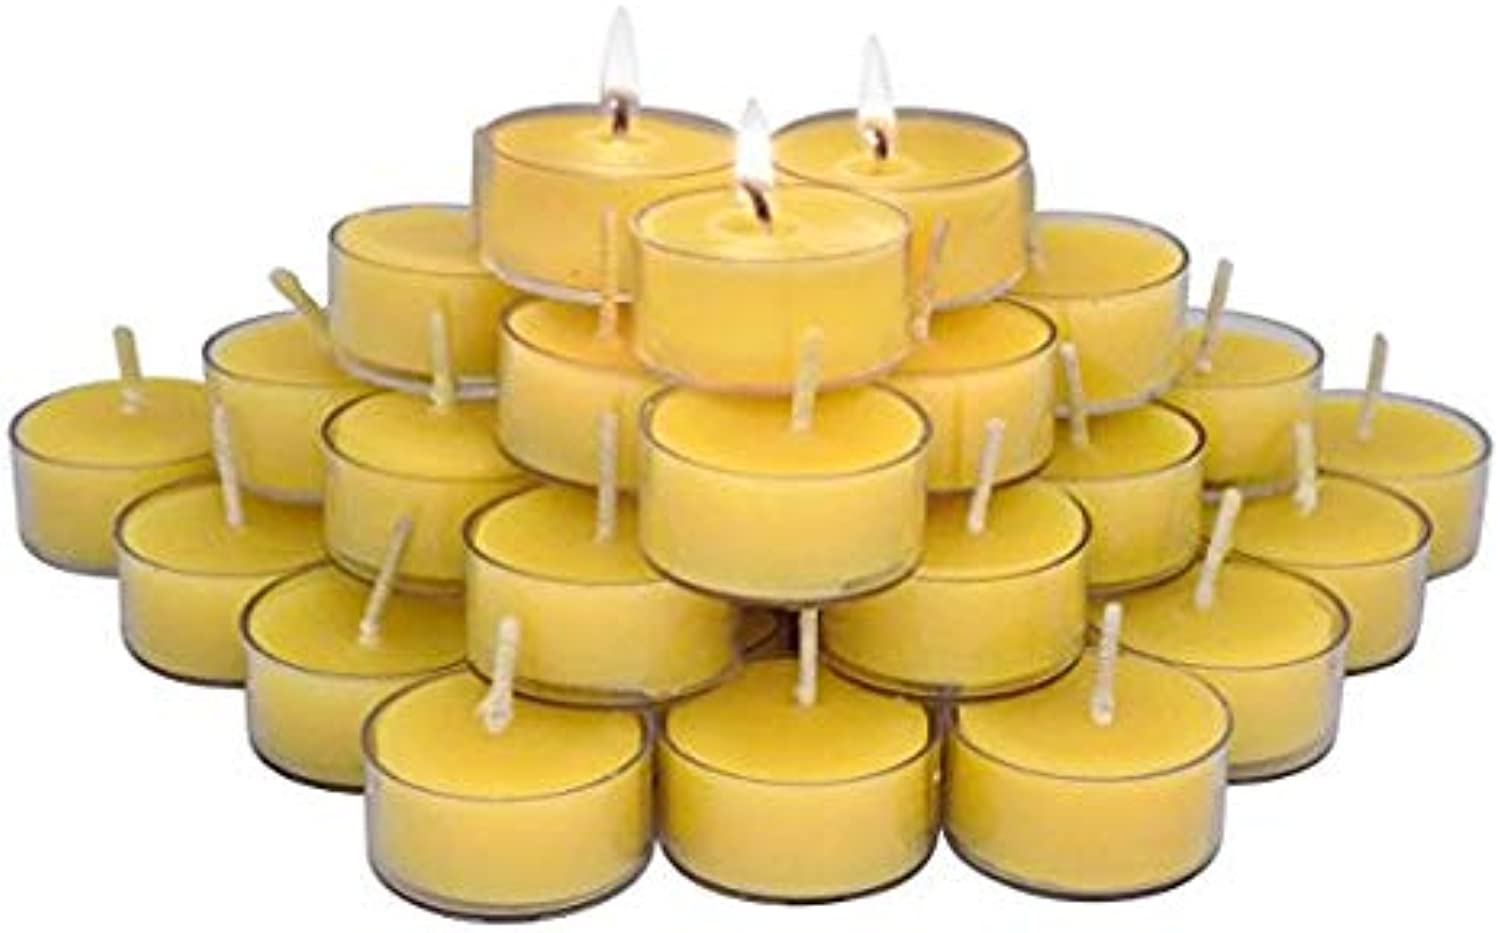 ELITE SELECTION Pure Beeswax Candles – 48 Handmade Beeswax Tea Light Candles – Smokeless Burning Candles - Natural Smell Candles – Tea Light Candles